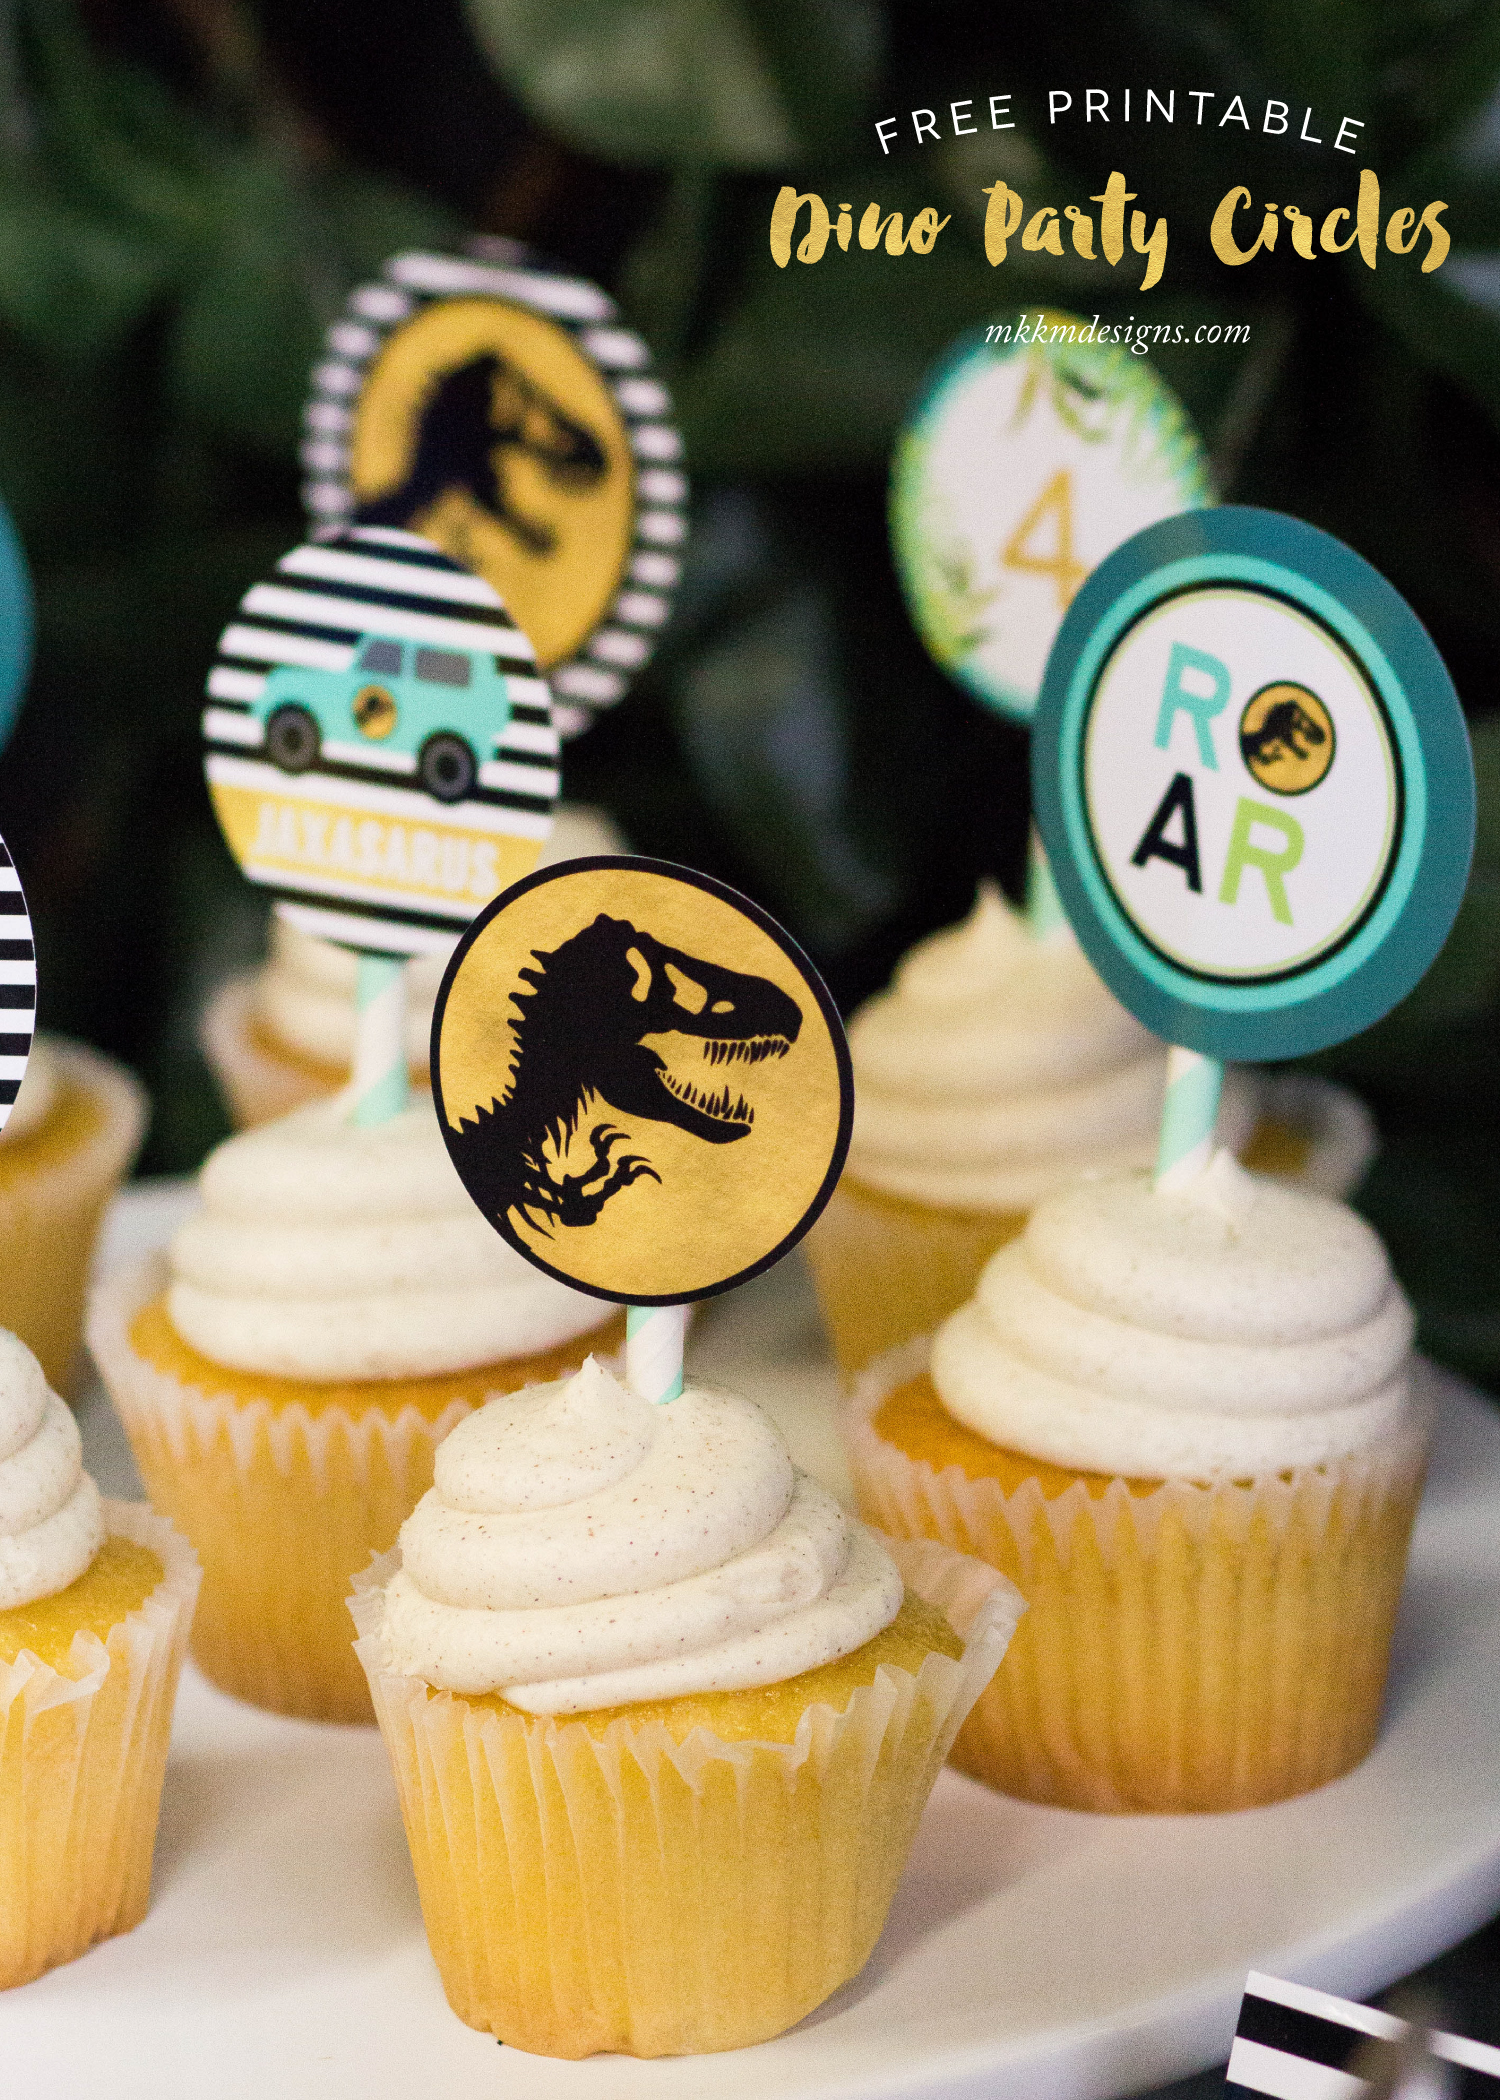 Free Printable Dino Party Circles By MKKM Designs